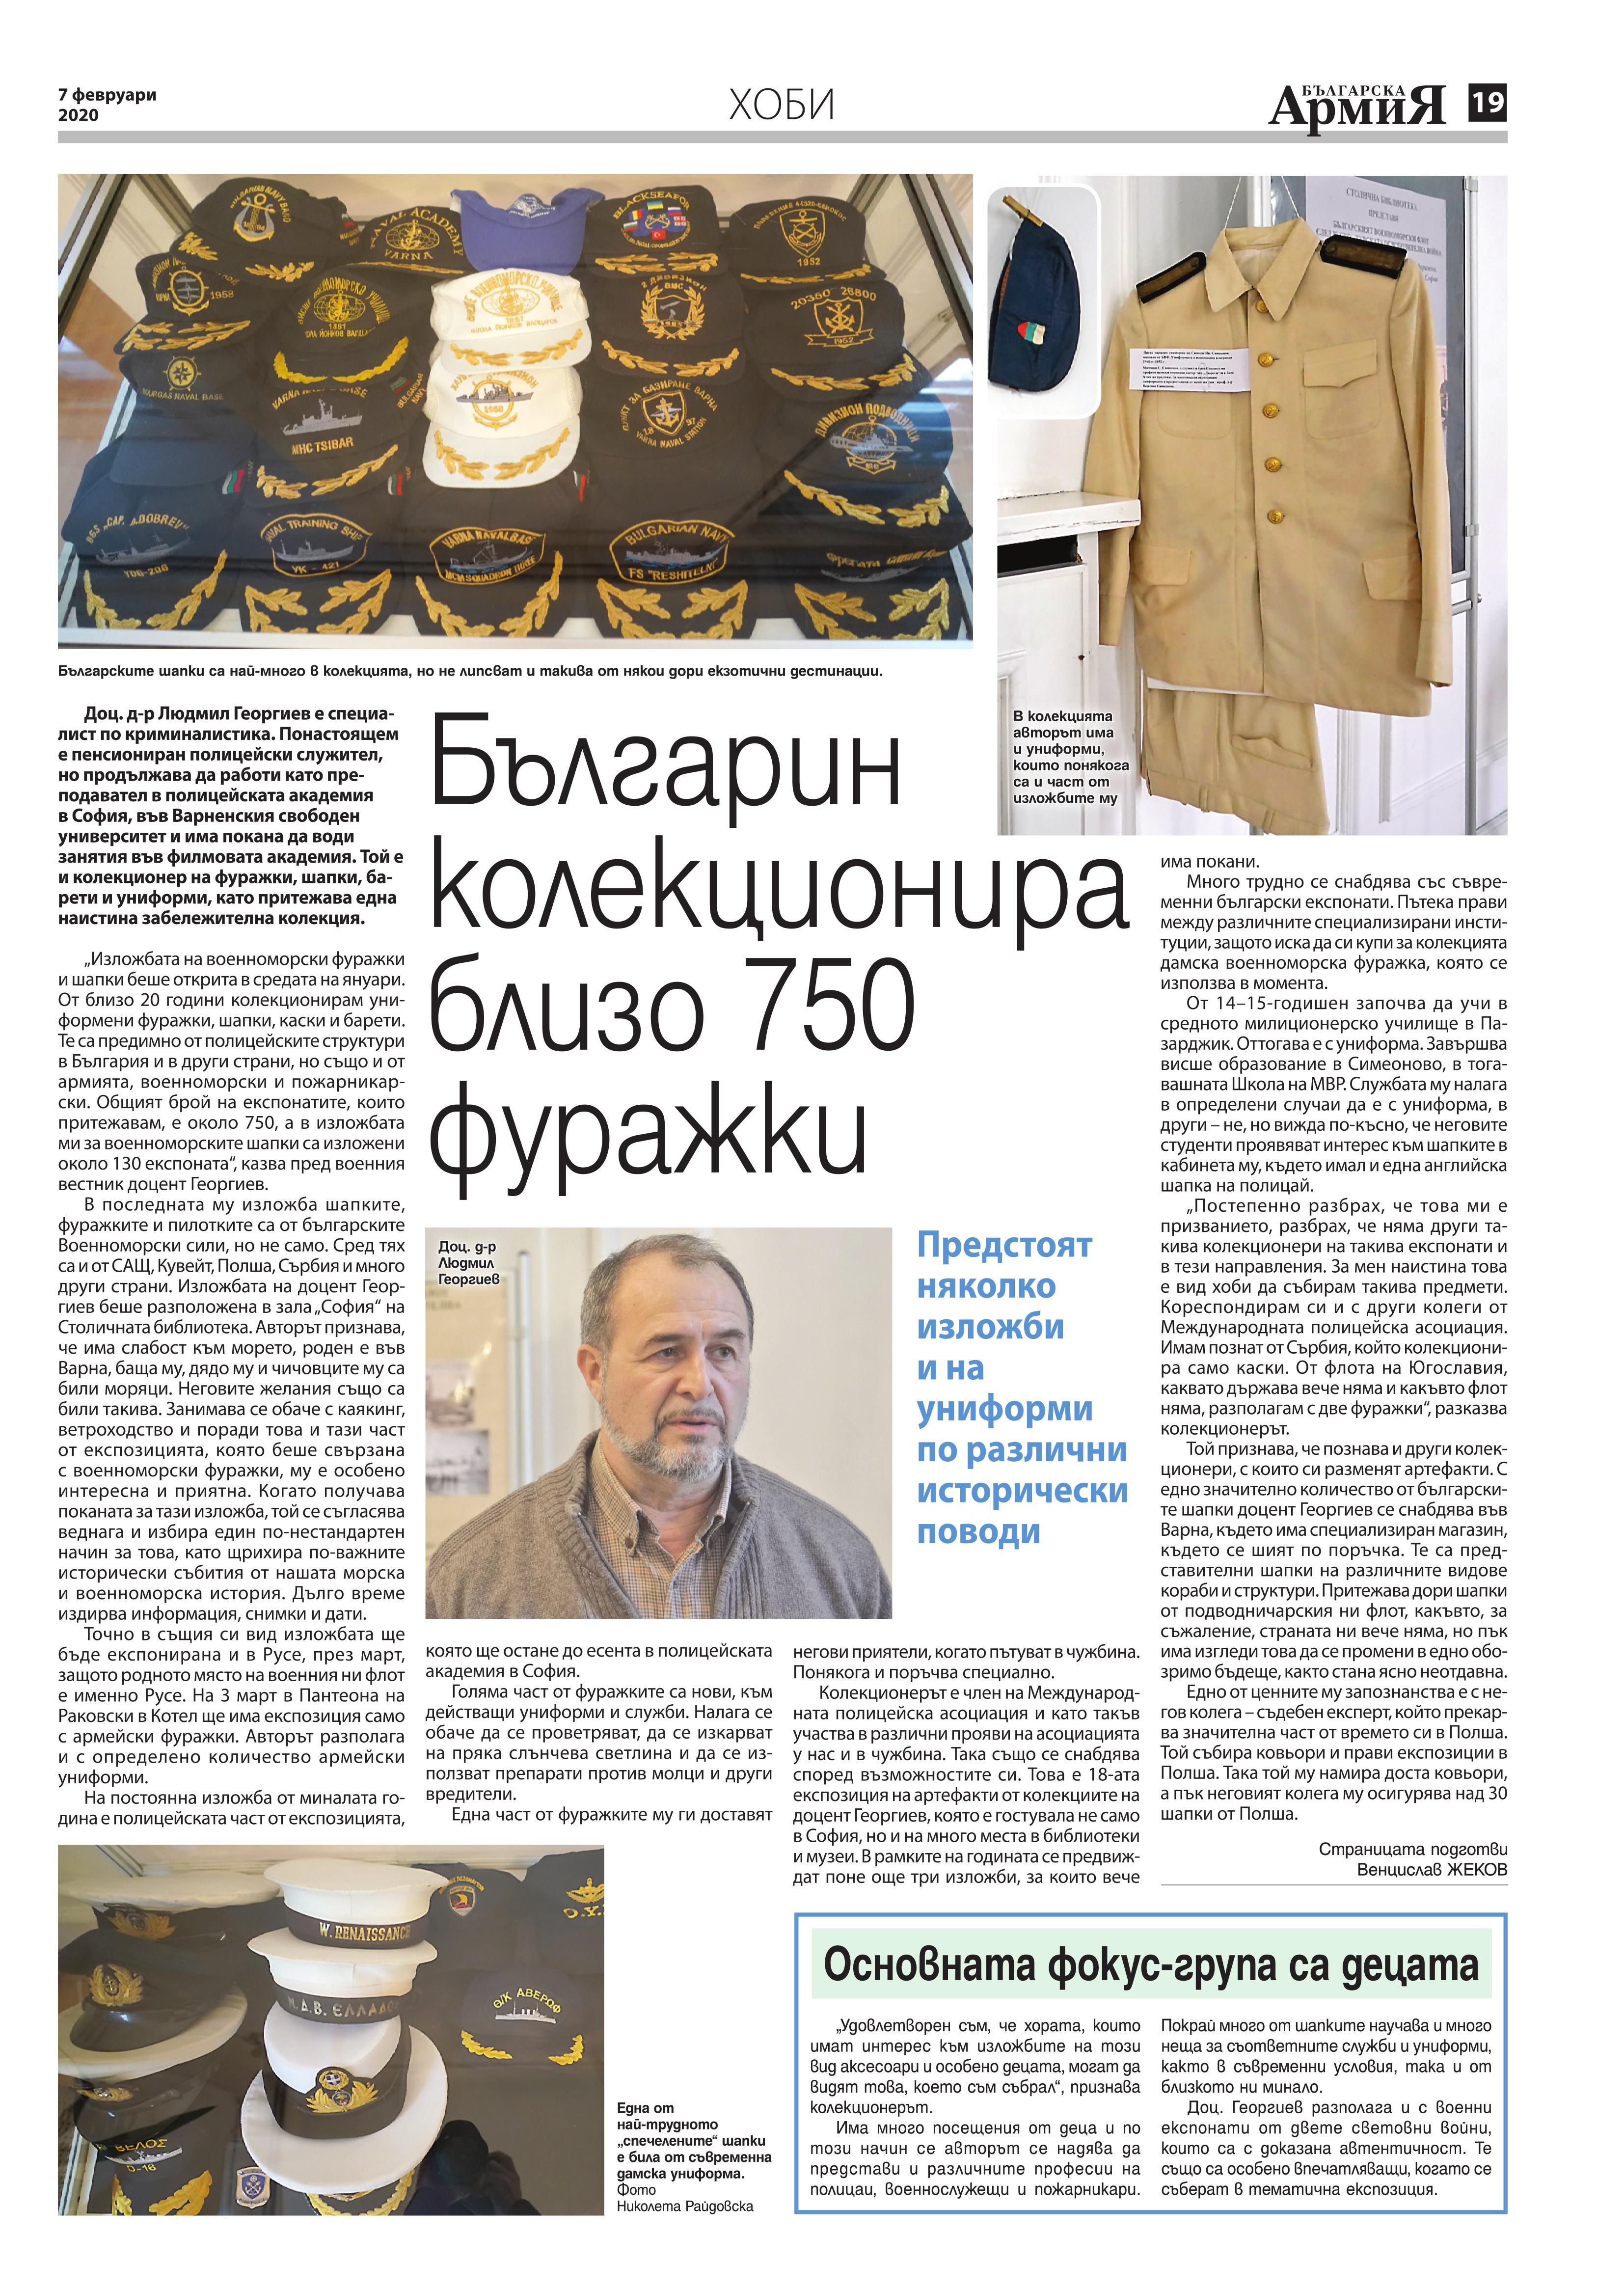 https://www.armymedia.bg/wp-content/uploads/2015/06/19.page1_-127.jpg